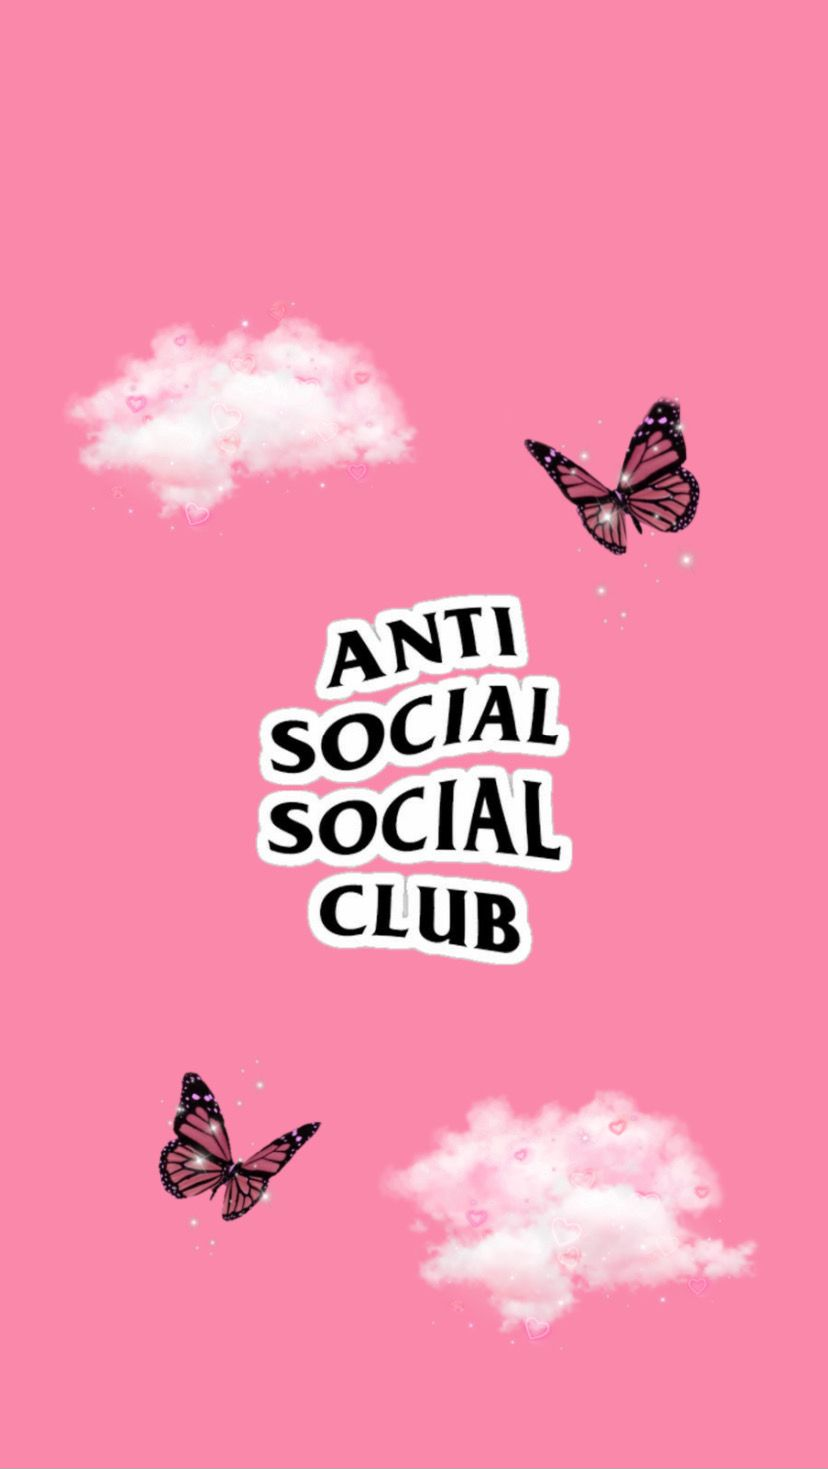 Pin By Brenda Guzman On Aes Anti Social Pink Retro Wallpaper Anti Social Social Club